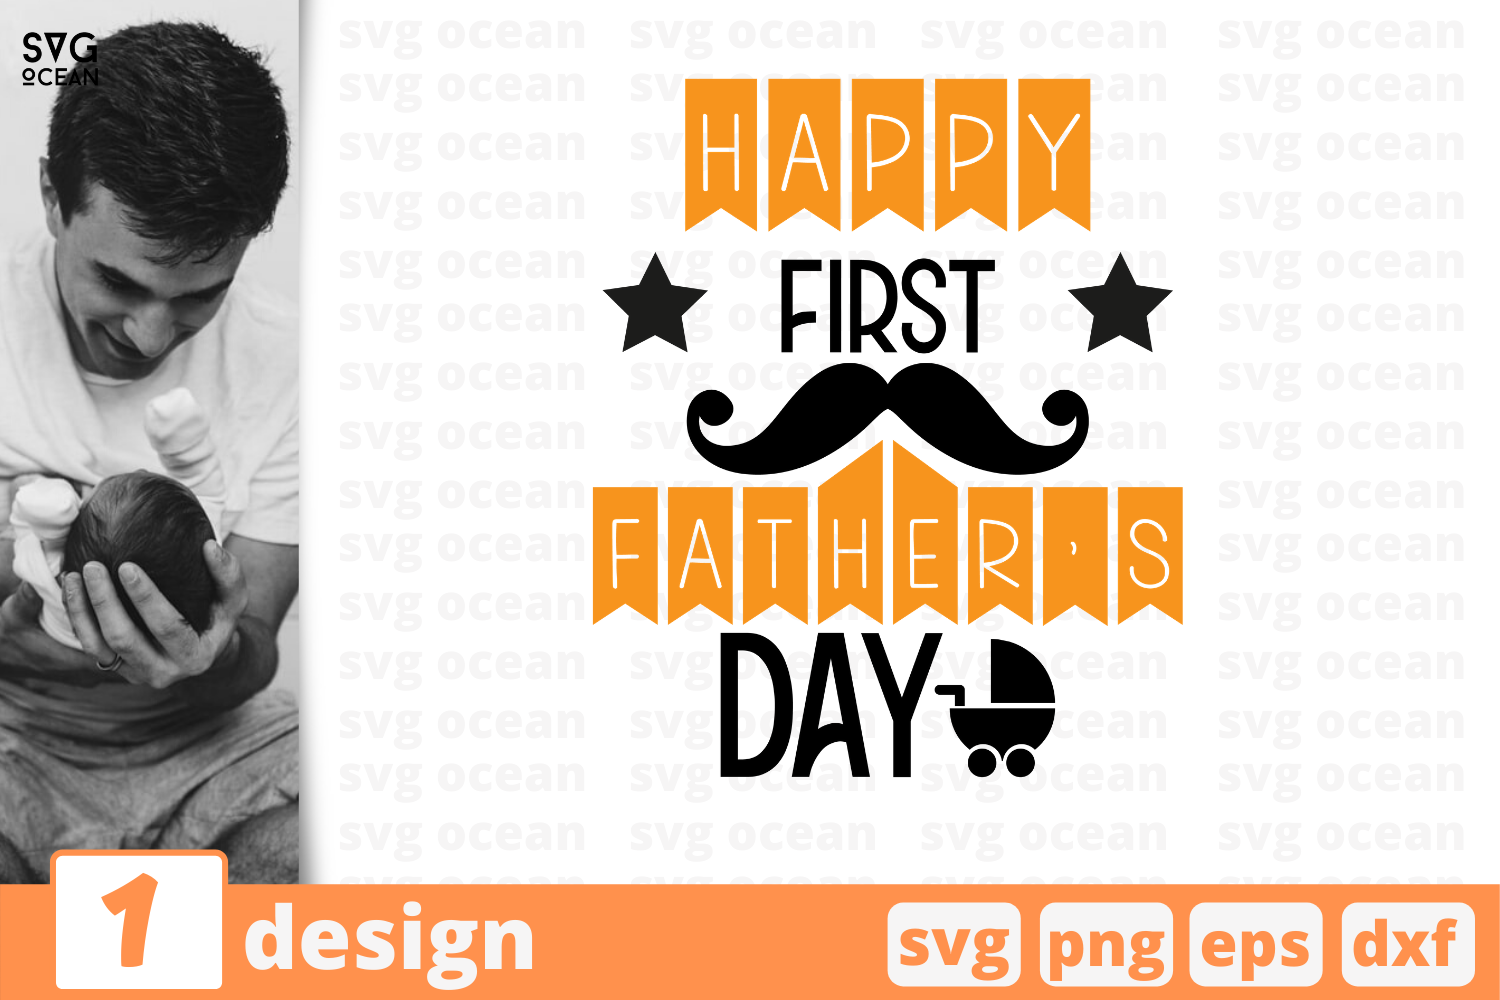 Download Free Happy First Father S Day Graphic By Svgocean Creative Fabrica for Cricut Explore, Silhouette and other cutting machines.